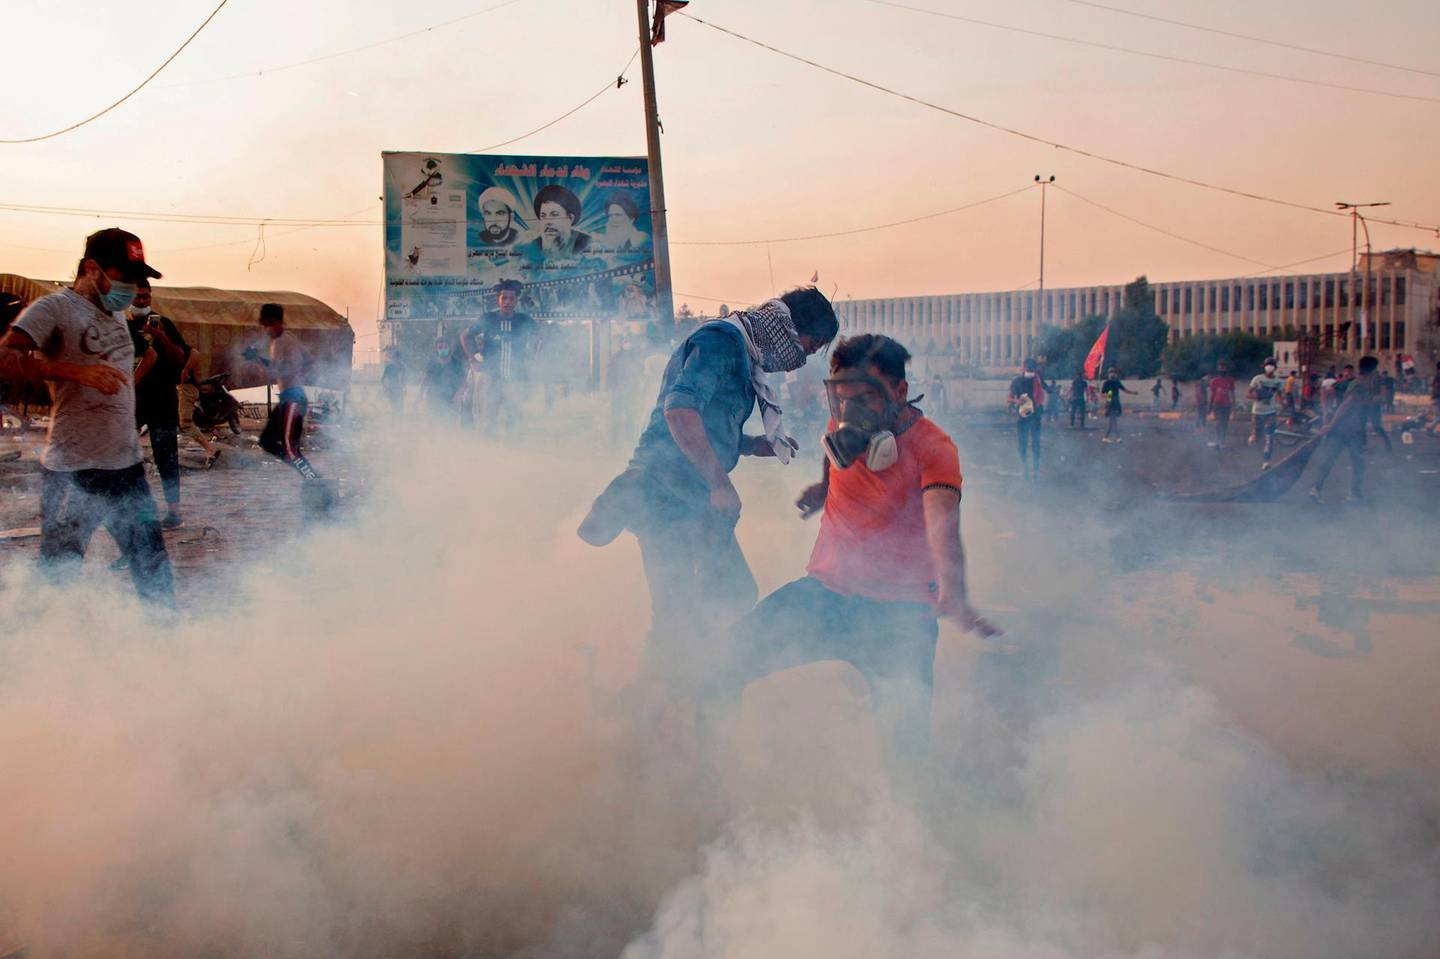 TOPSHOT - Iraqi protesters wear masks to protect themselves from tear gas as they take part in an anti-goverment demonstration in the southern city of Basra on November 8, 2019.  Anti-government protests in Iraq entered their third week today amid fresh bloodshed. In Basra, seven protesters were killed in confrontations yesterday and early today, with security forces trying to reopen roads blocked by sit-ins, medical sources said. / AFP / Hussein FALEH